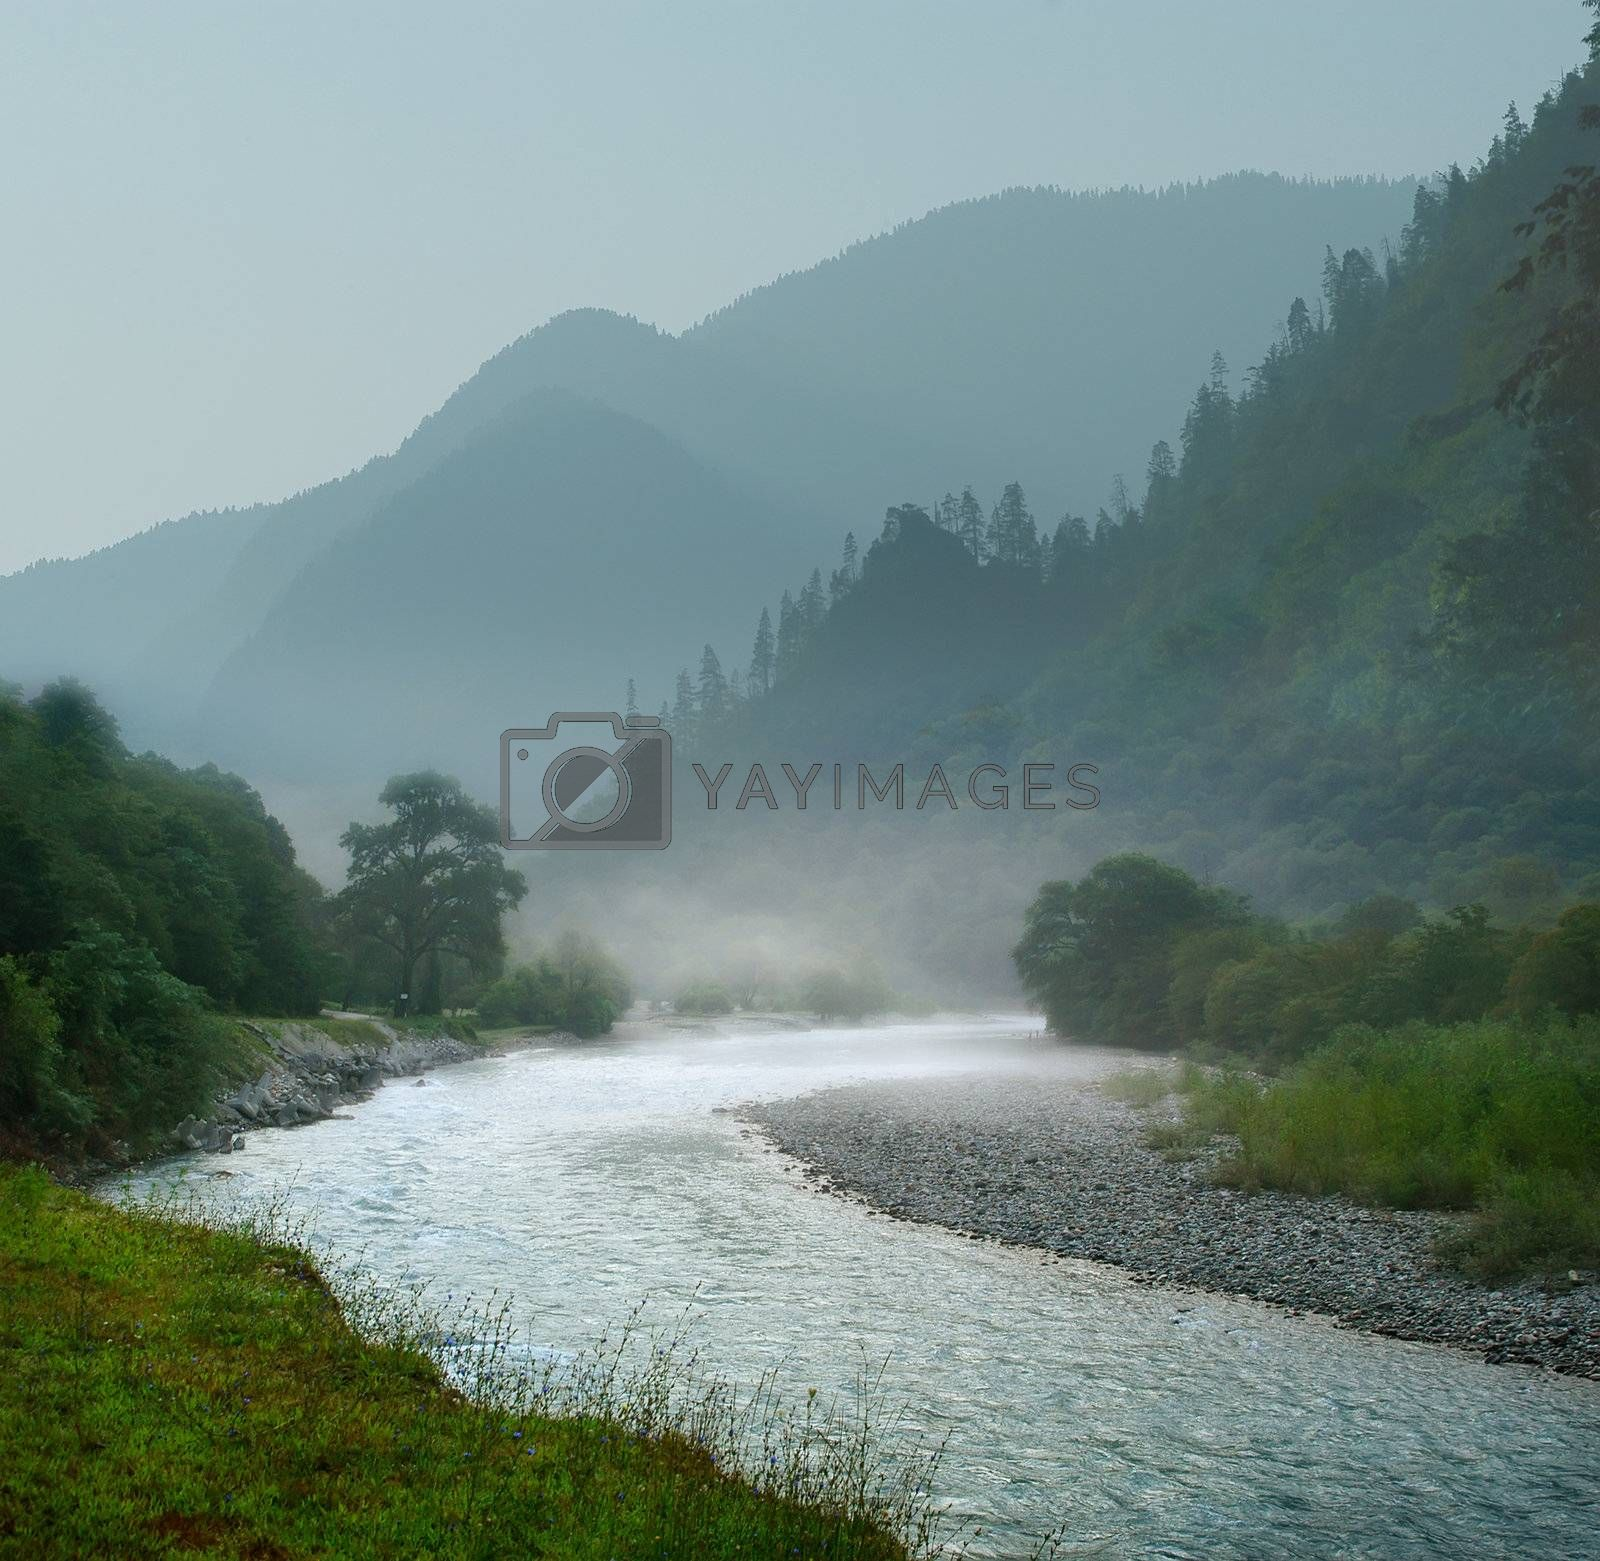 Royalty free image of Mountain landscape with the rapid river by oleg_zhukov